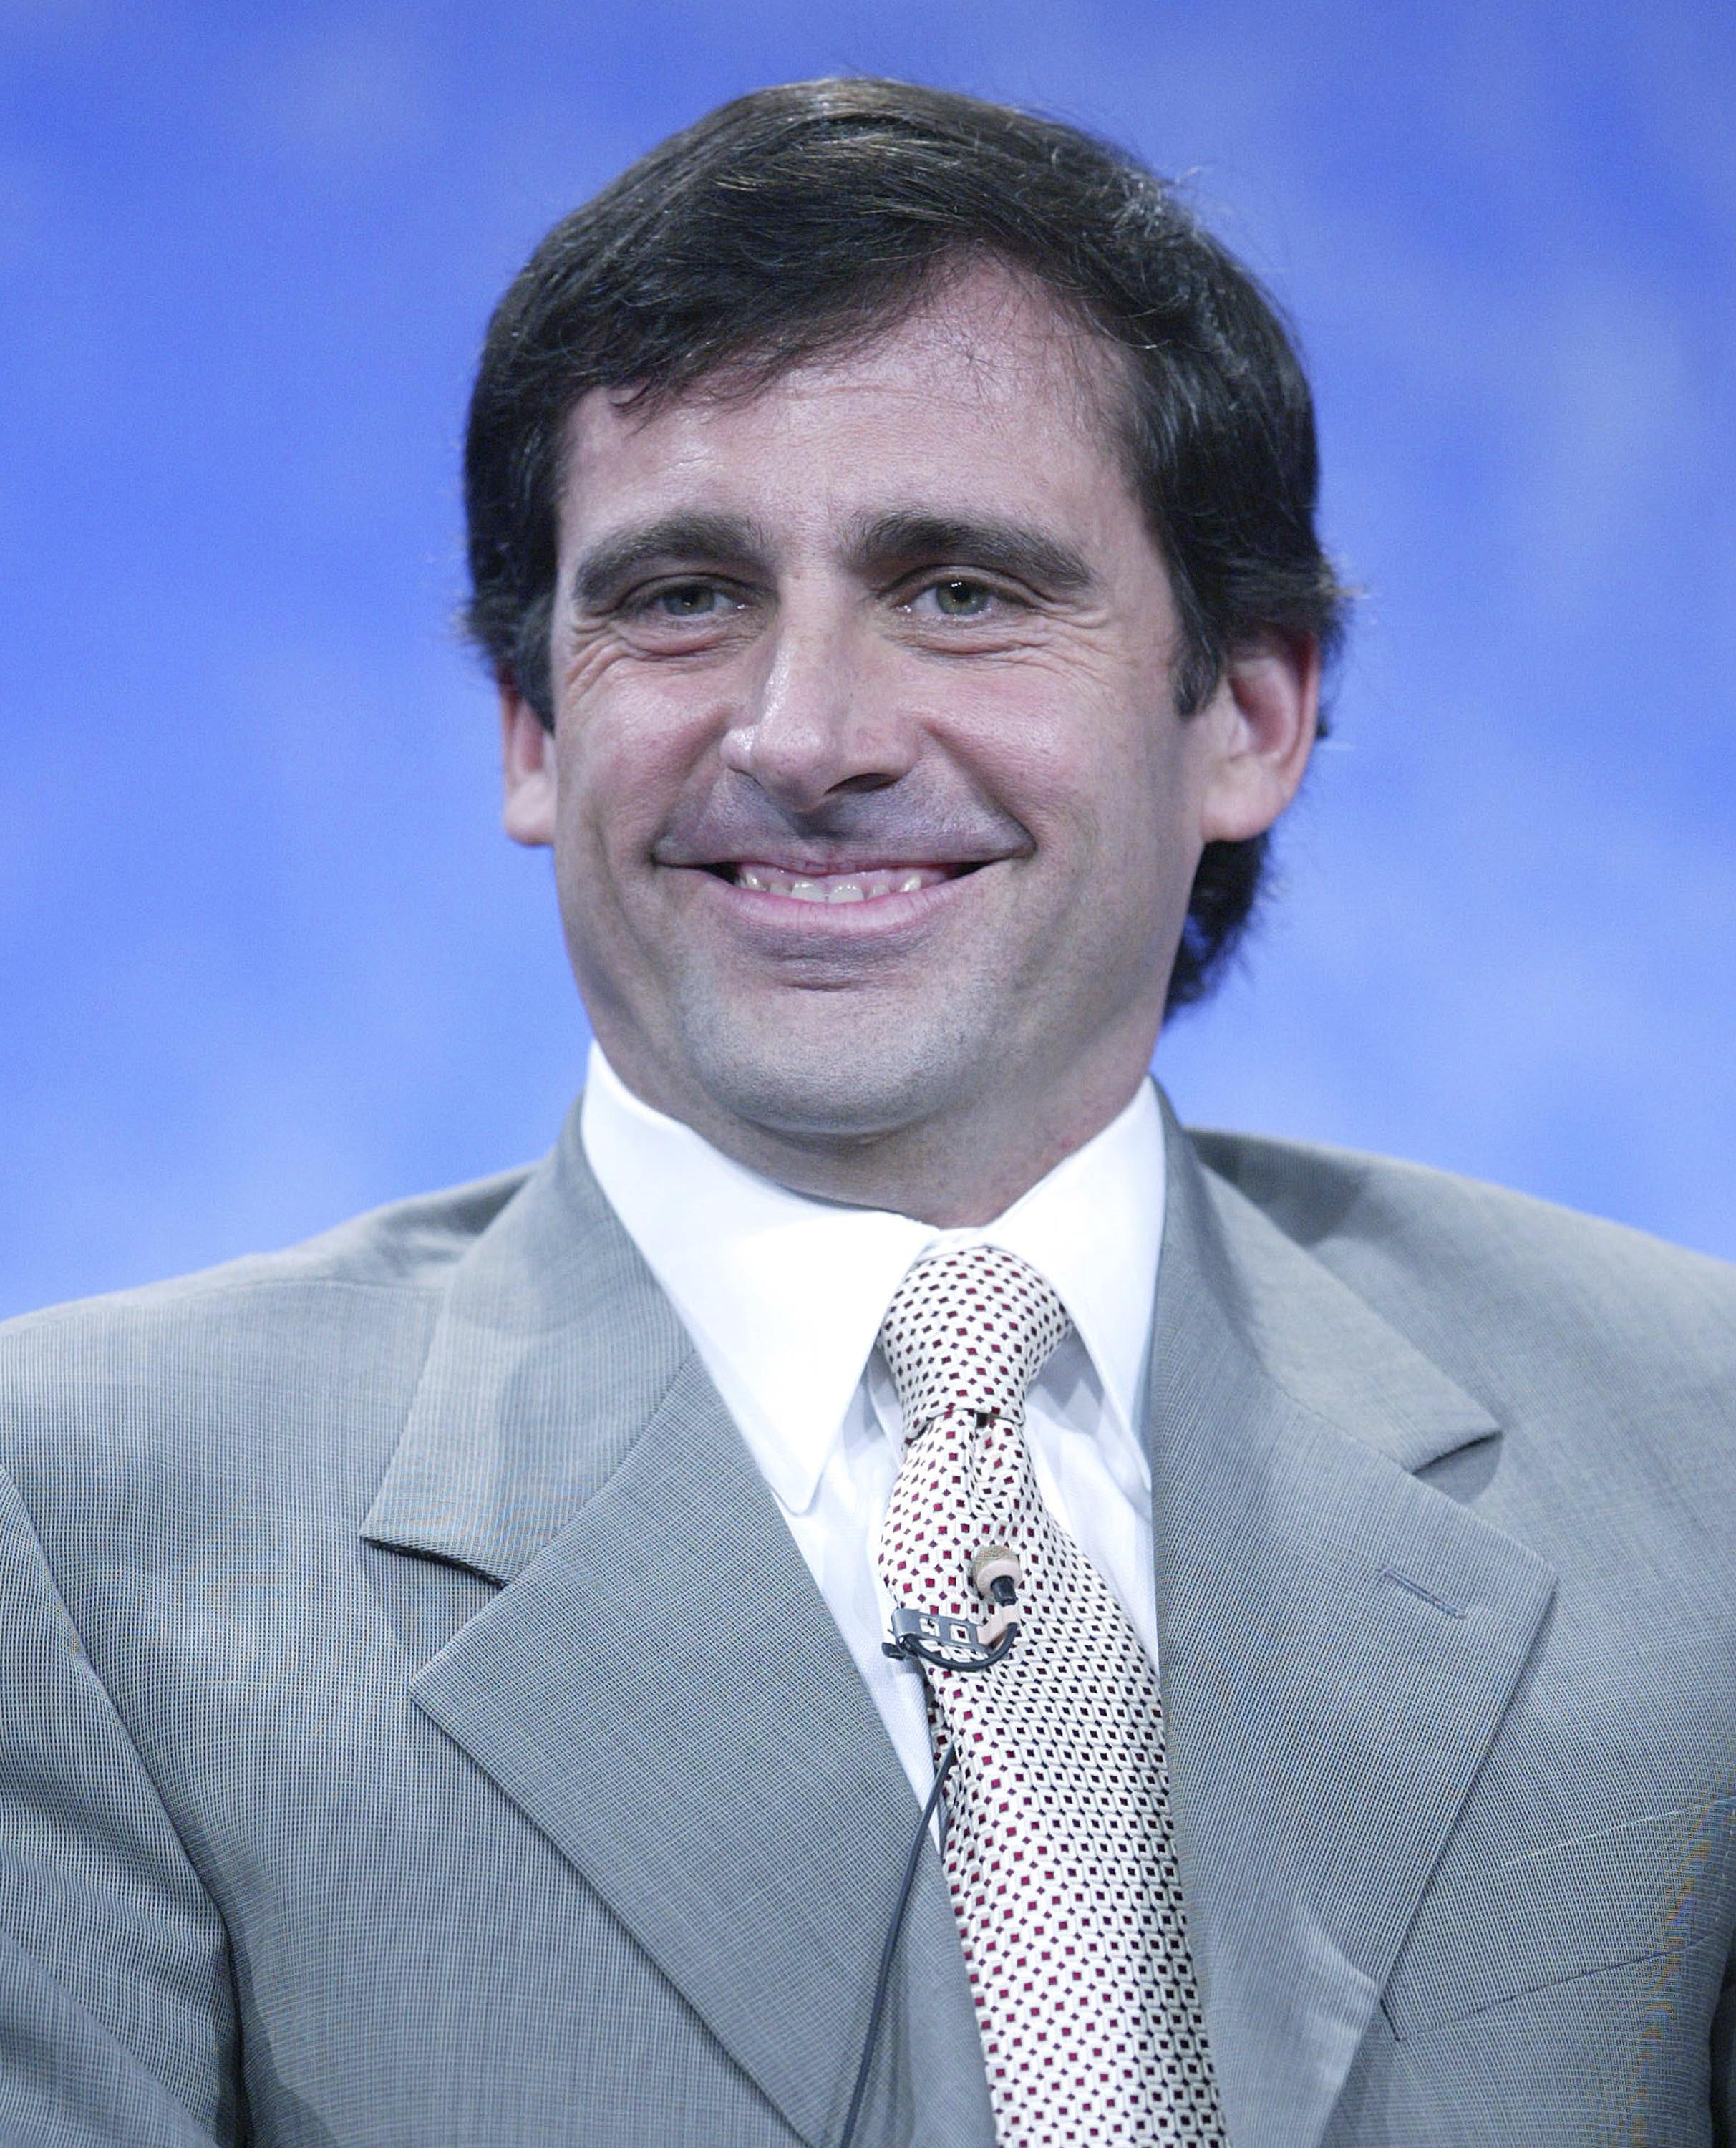 50 Interesting Facts About Steve Carell He Is A Talented Ice Hockey Player People Boomsbeat But the ability to address a large number of people, from ministers in parliament to troops on the battlefield, stood elizabeth in good stead for the future. https www boomsbeat com articles 15930 20150127 50 interesting facts about steve carell office evan almighty htm